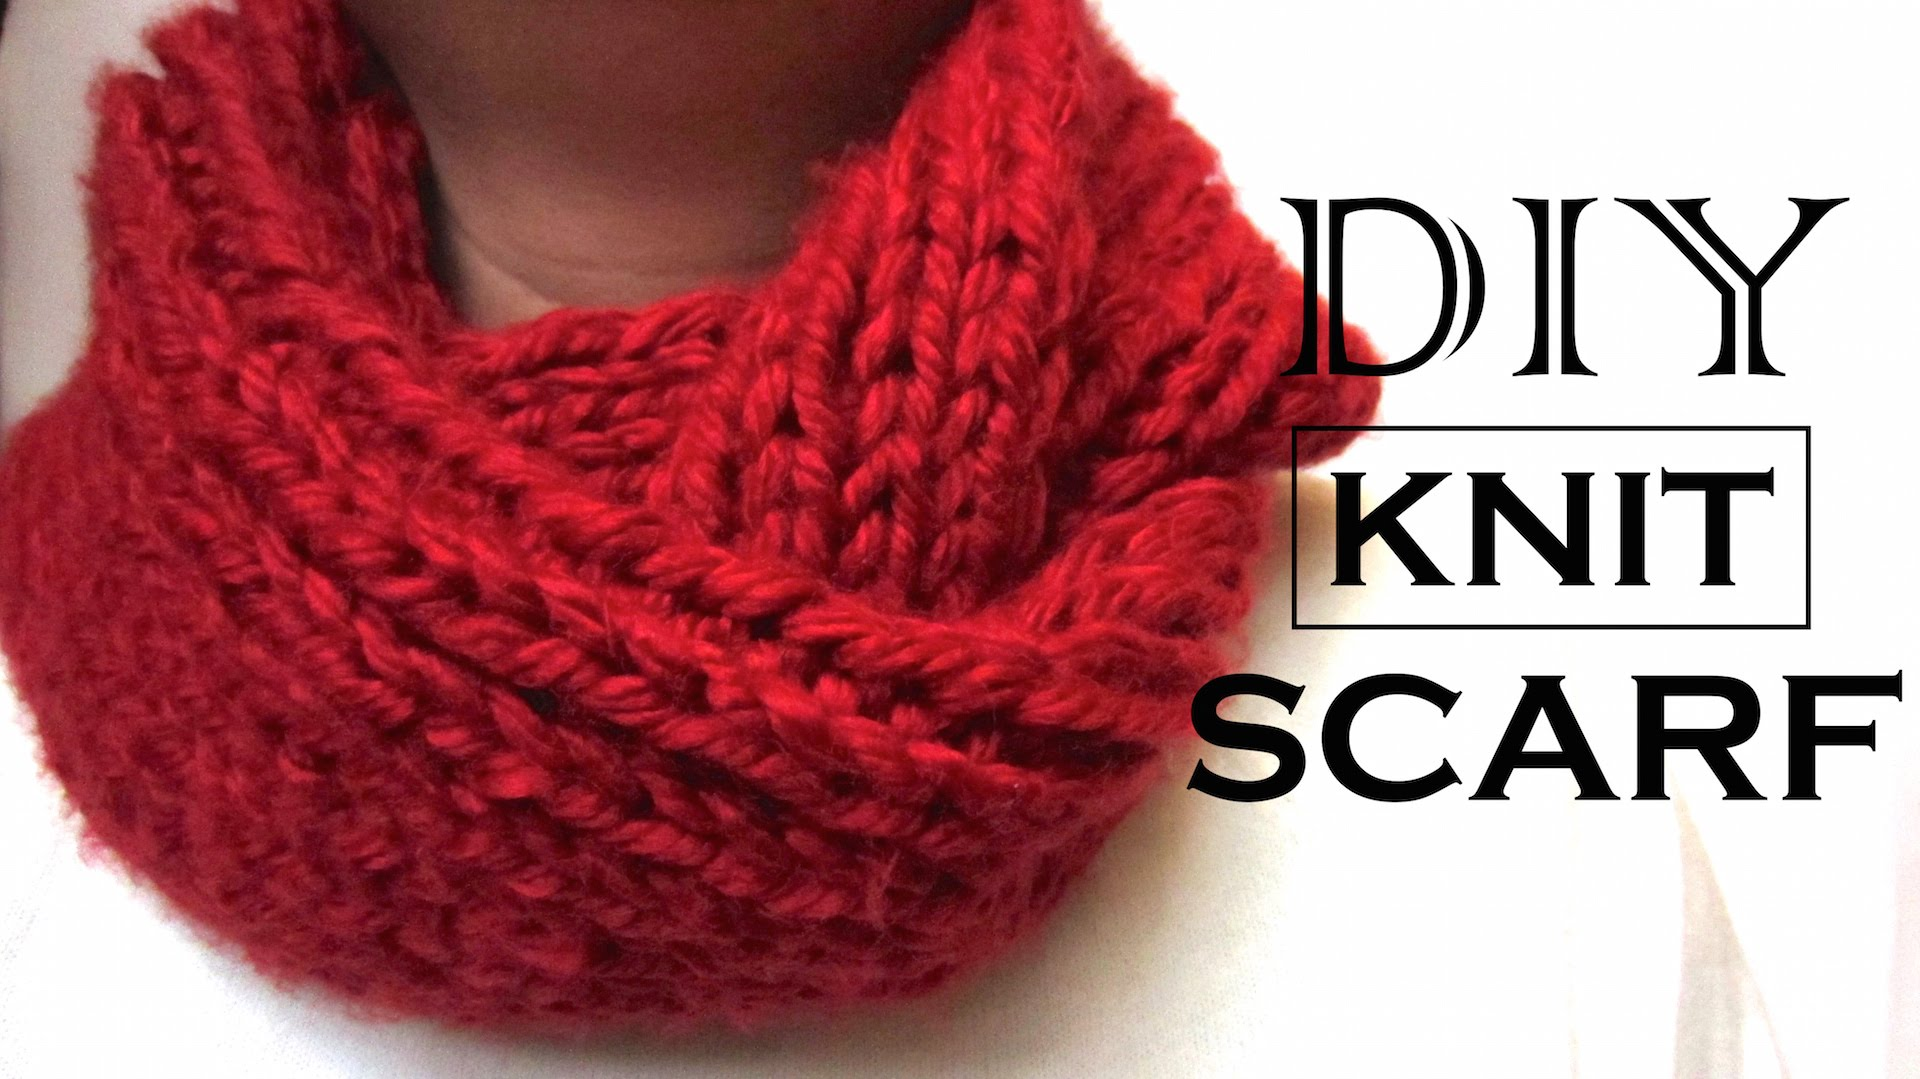 Diy gifts for men 20 free knitting patterns to take your loved comprehensive tutorial on how to knit a scarf bankloansurffo Image collections